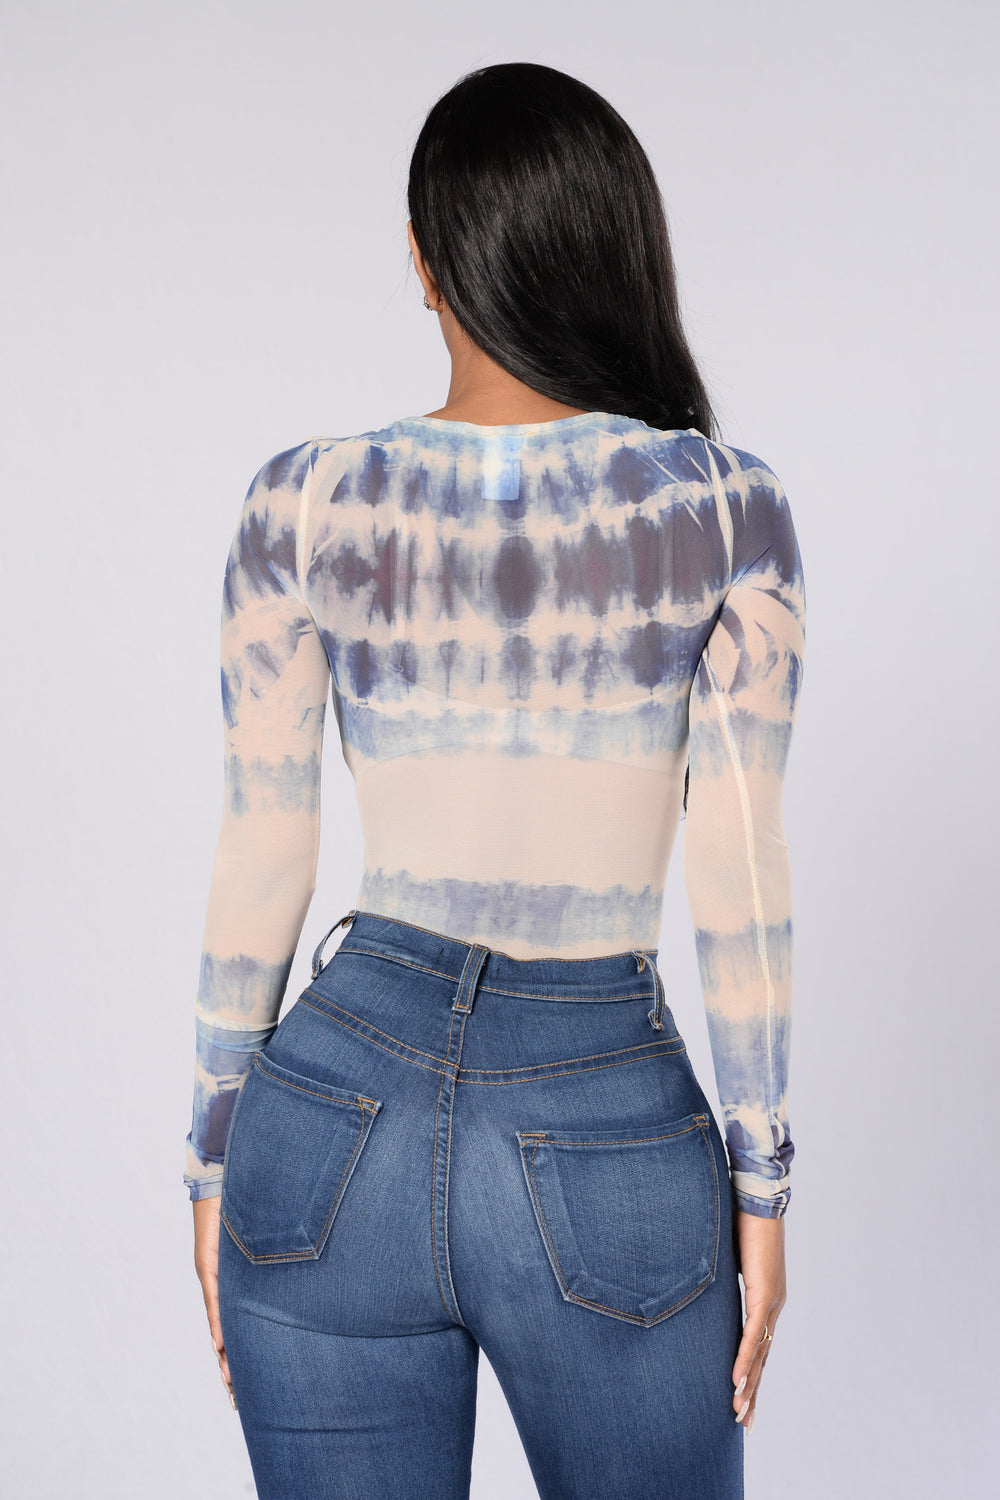 Wonderlust Tie Dye Bodysuit - Blue